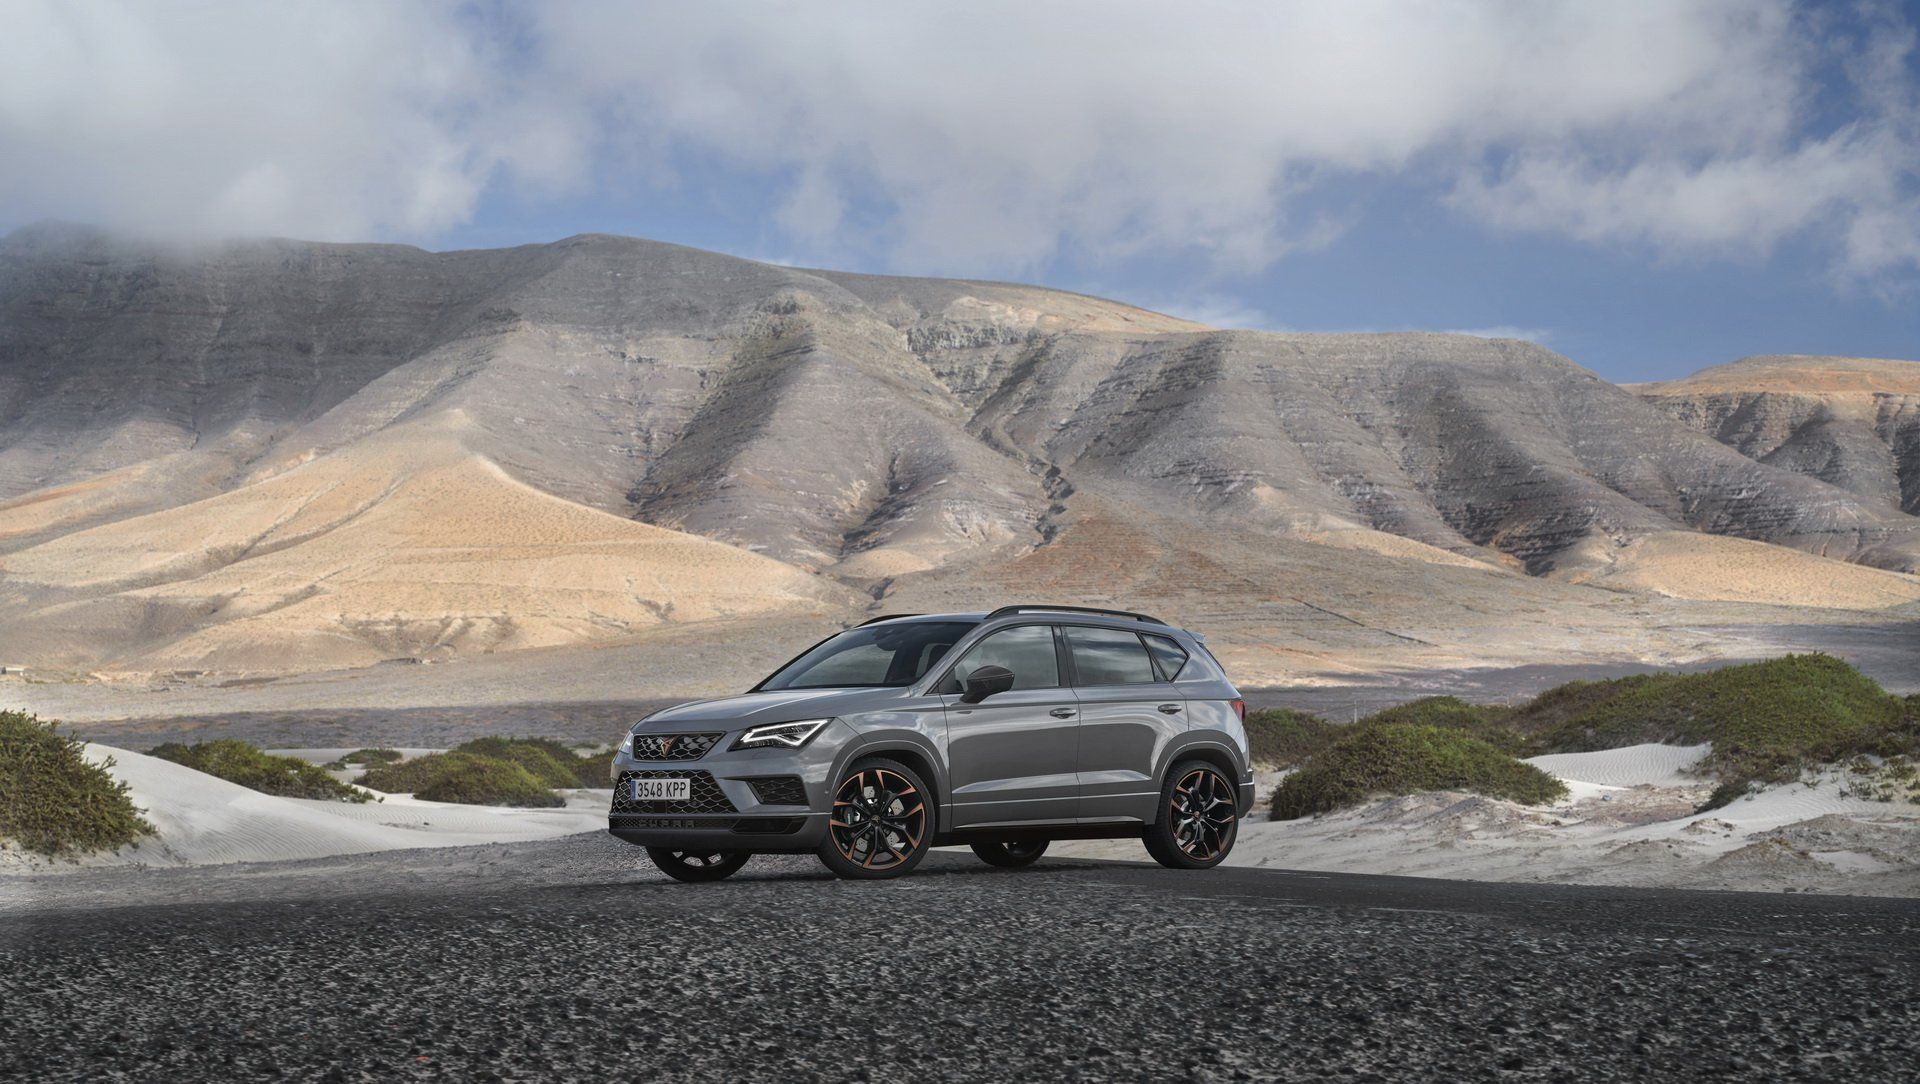 Cupra-Ateca-Limited-Edition-7